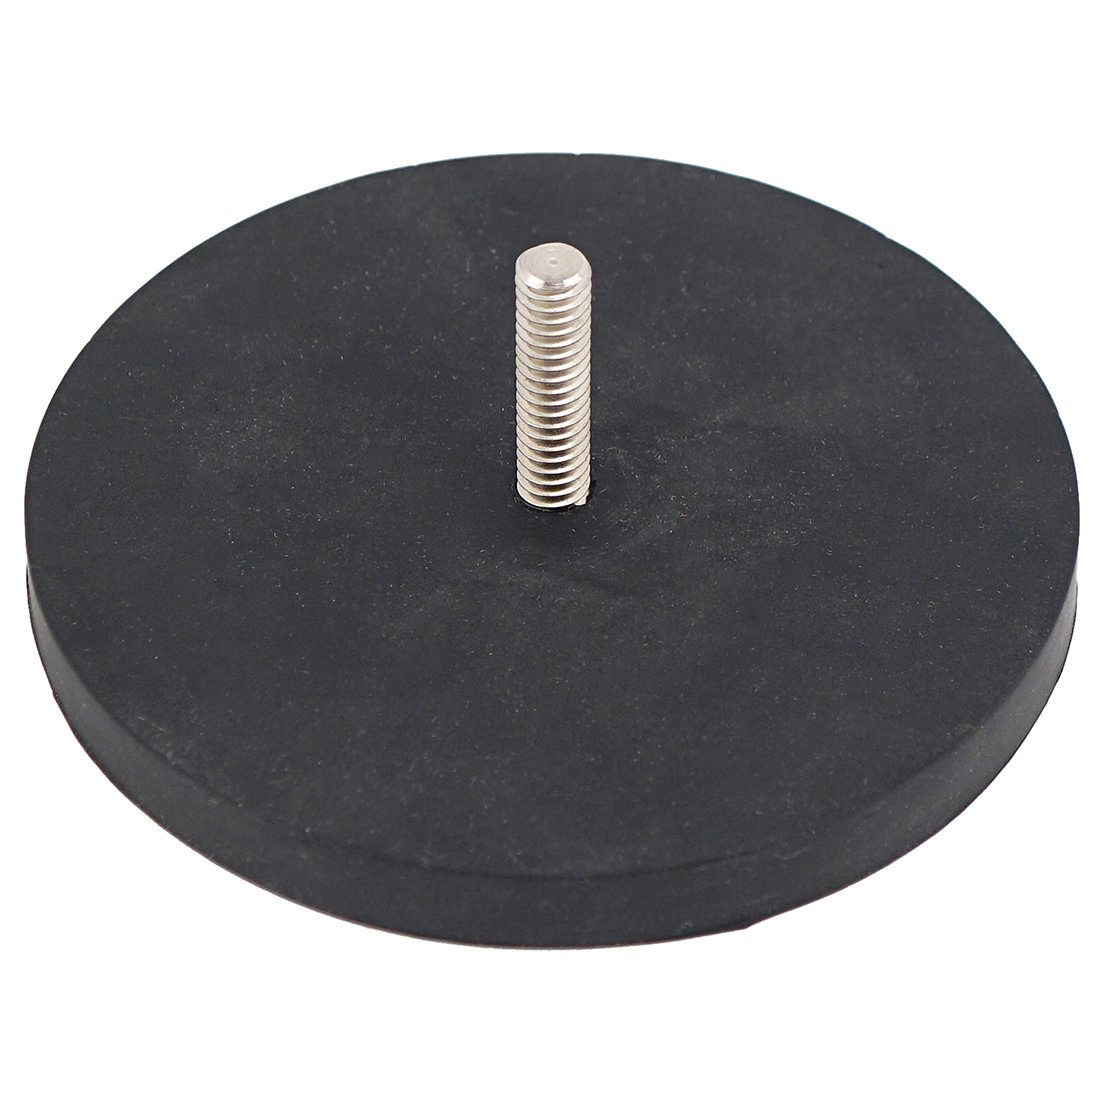 Master Magnetics NADR351MBX Retaining Magnet with 1/4-20 Threaded Stud, Rubber Covered Black, 3.51'' Diameter, 1.32'' Overall Height, 105 lb. of Pull, Zinc Plated Housing